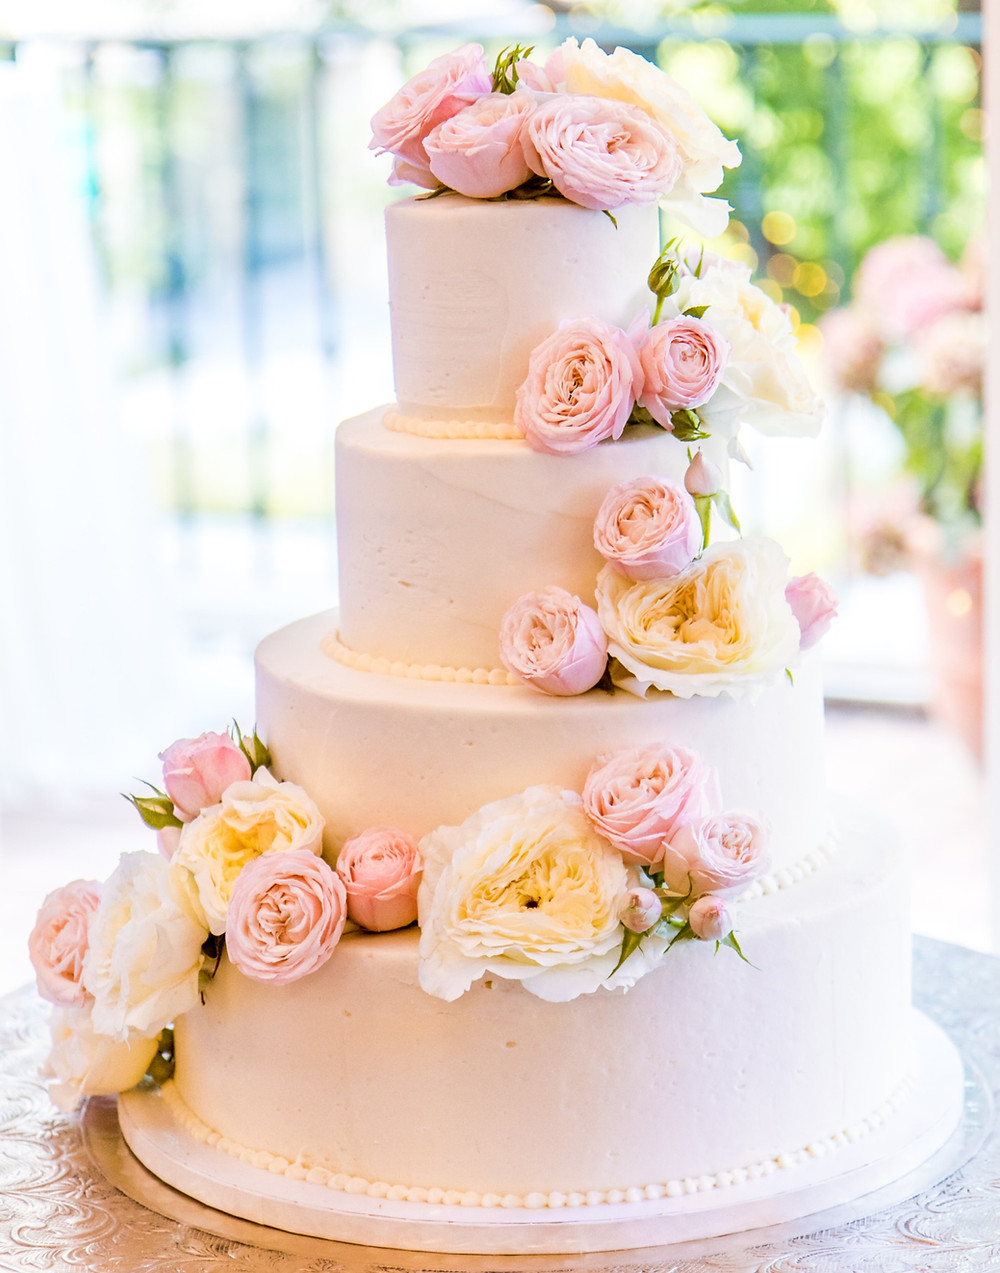 4-tier-white-wedding-cake-decorated-with-pink-and-white-roses